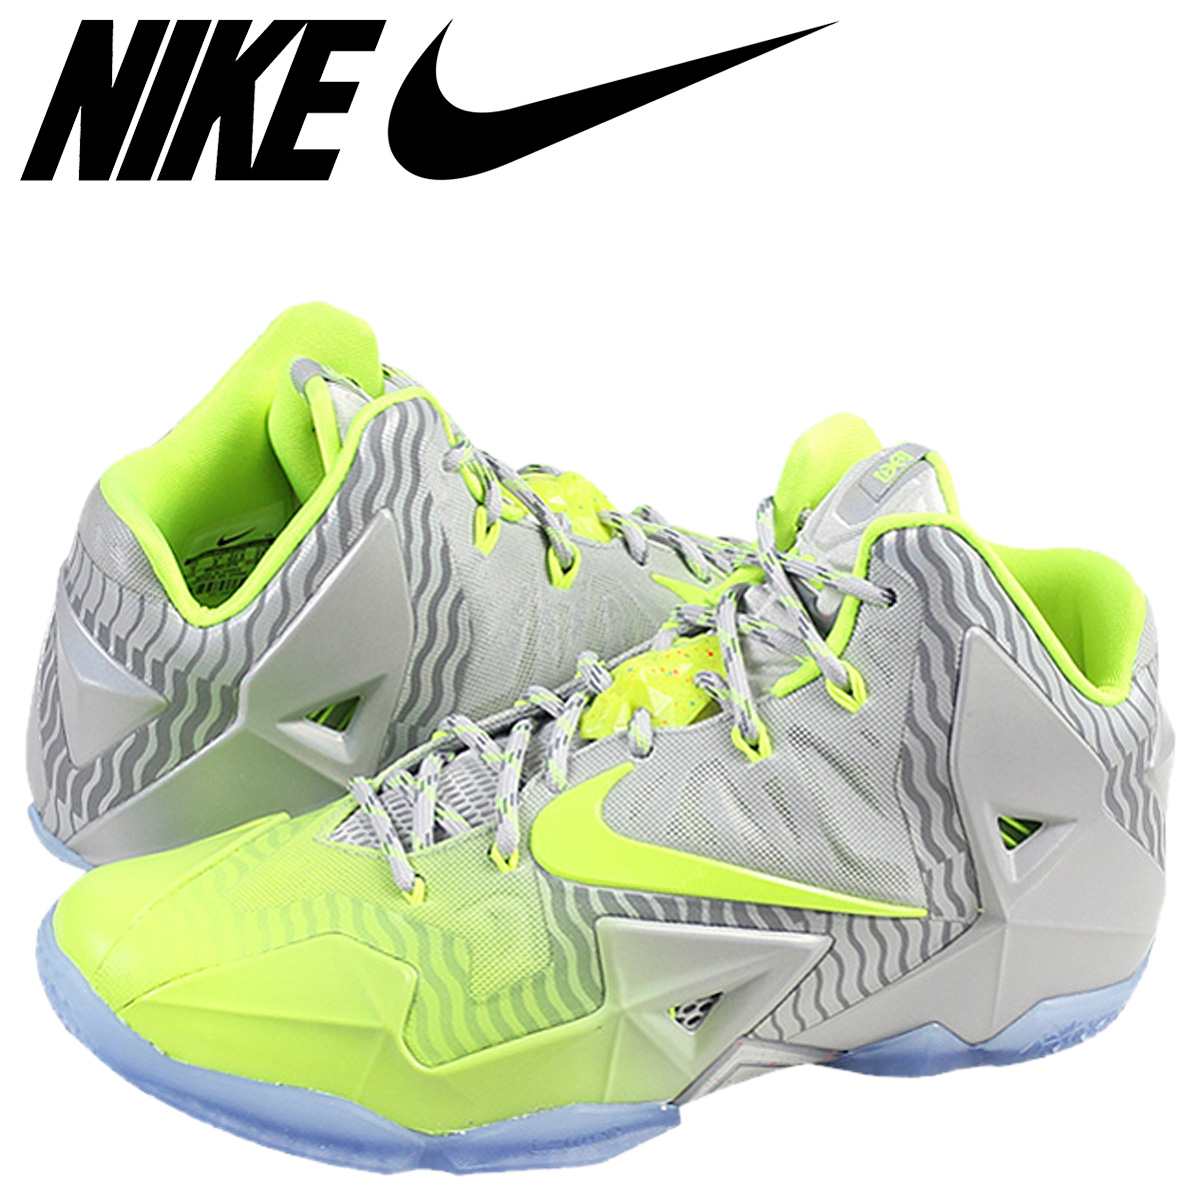 release date: 7f65c a2be2 Point 2 x Nike NIKE LEBRON 11 MAISON LEBRON COLLECTION sneakers LeBron 11  Maison LeBron collection leather men's LeBron James 683252-074 METALLIC ...